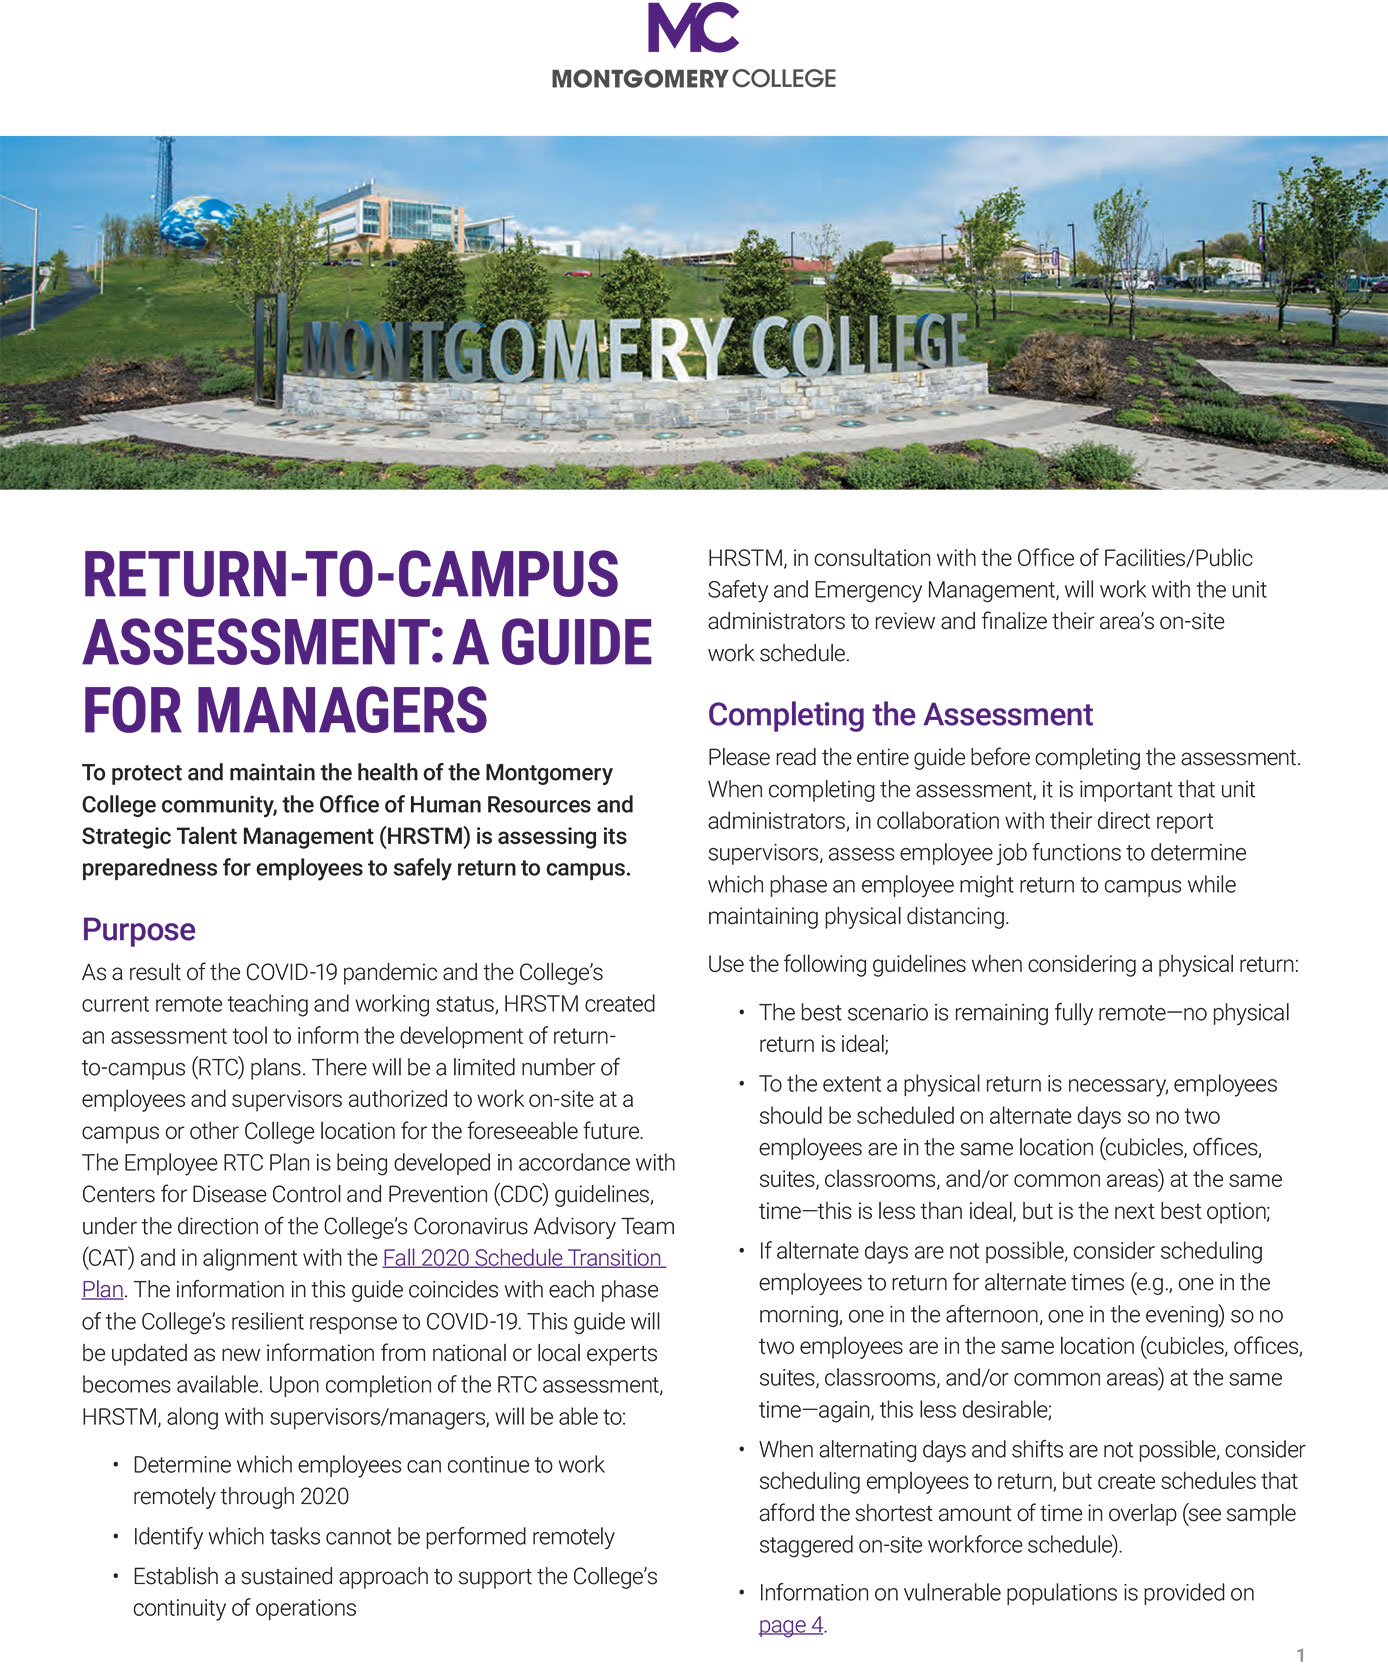 Return-to-Campus Assessment: A Guide for Managers